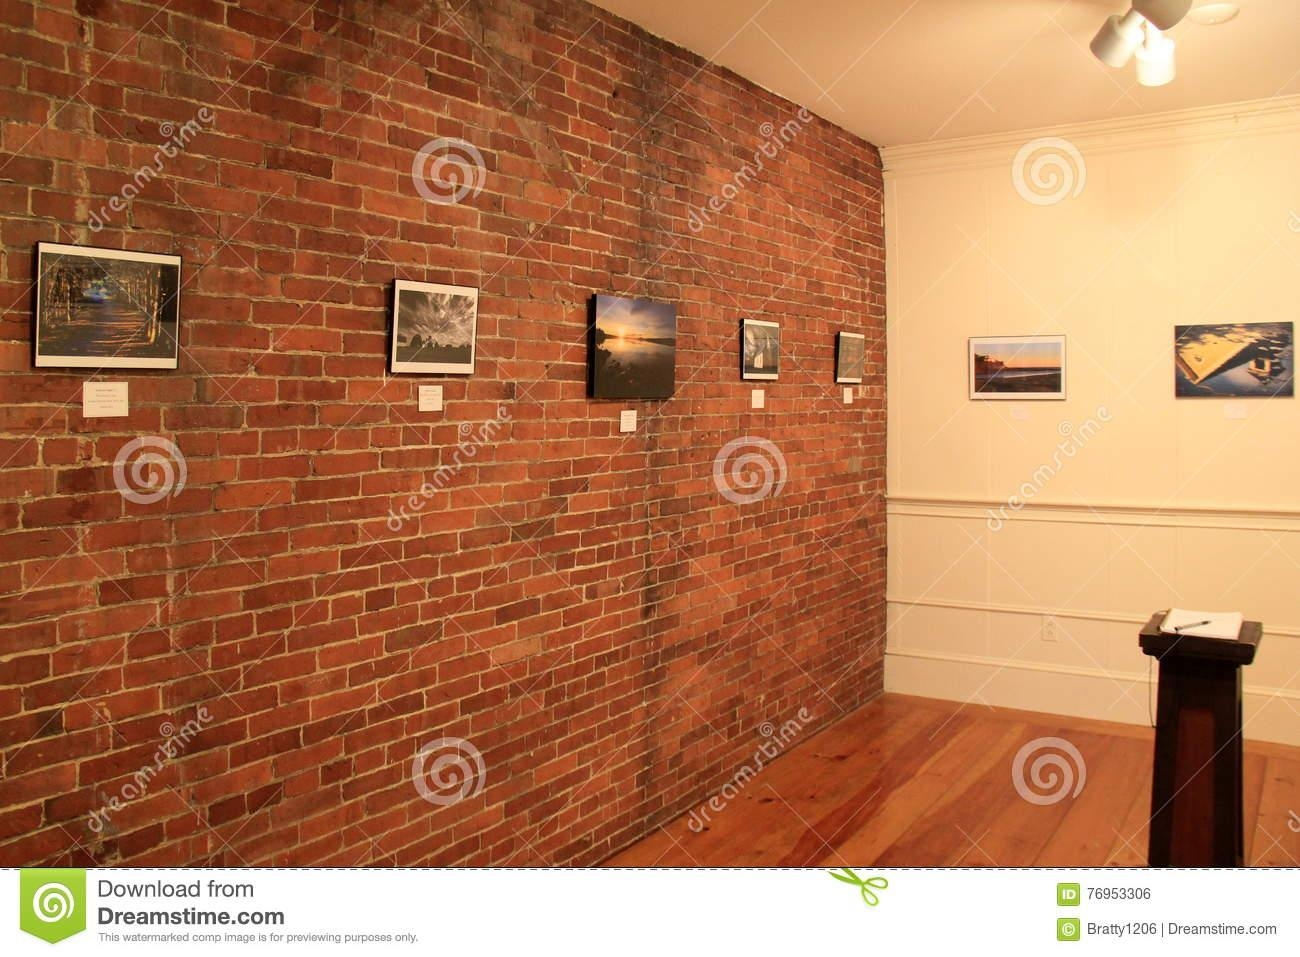 Wall Art For Brick Walls 2019 Latest Hanging Wall Art For Brick Wall Wall Art Ideas